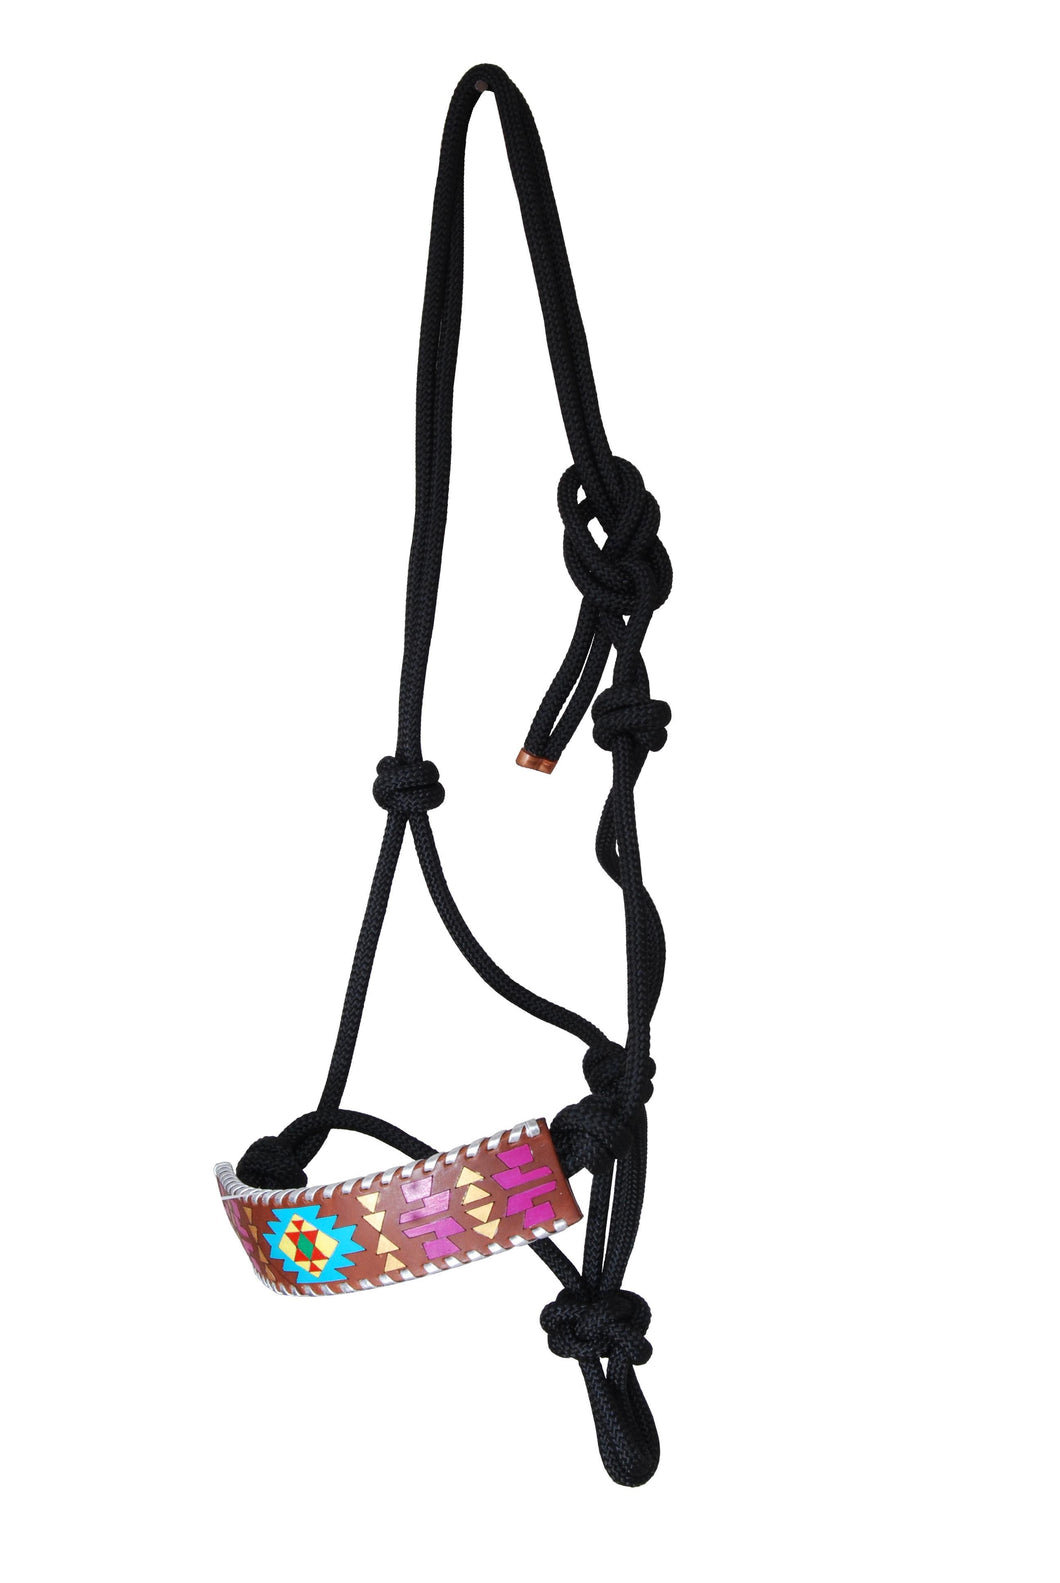 Rafter T Rope Halter - Painted Aztec